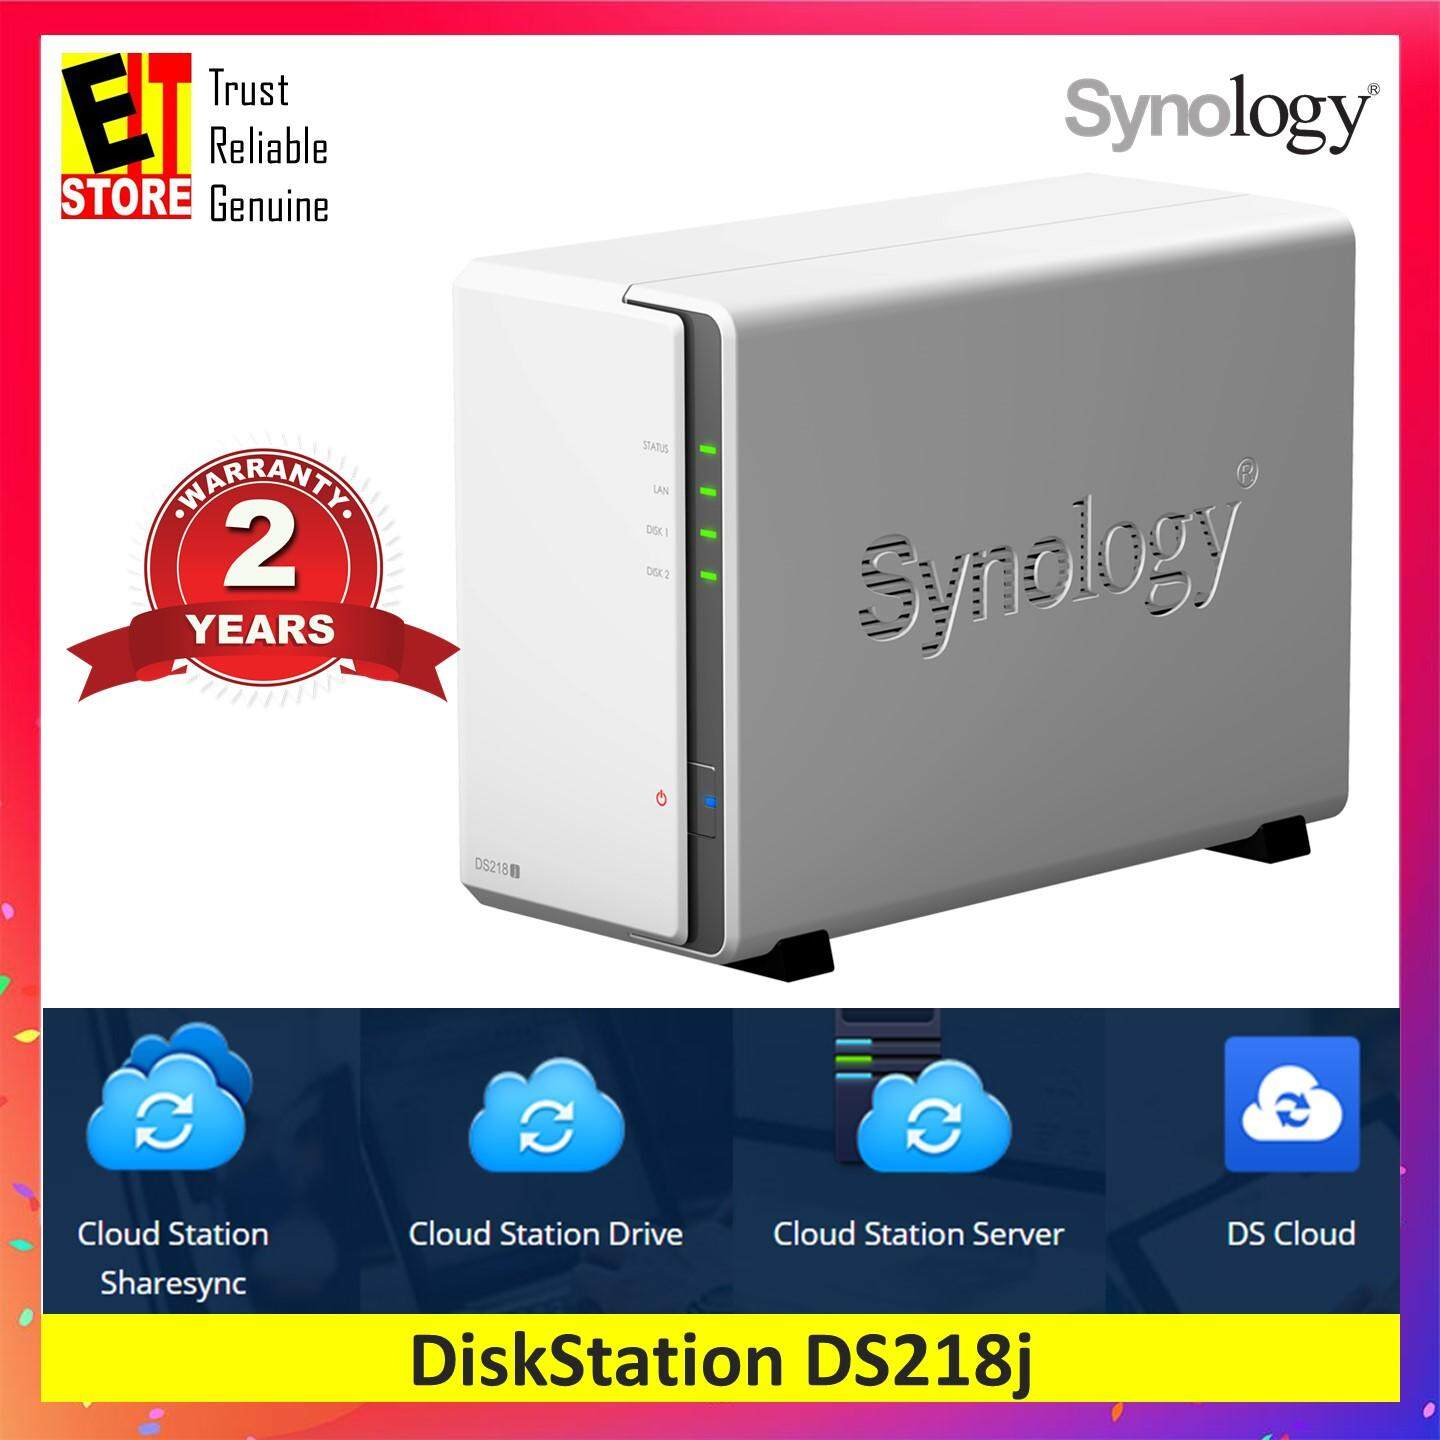 SYNOLOGY DISKSTATION DS218J 2-BAY NAS 512MB DDR3 FOR HOME AND PERSONAL  CLOUD STORAGE